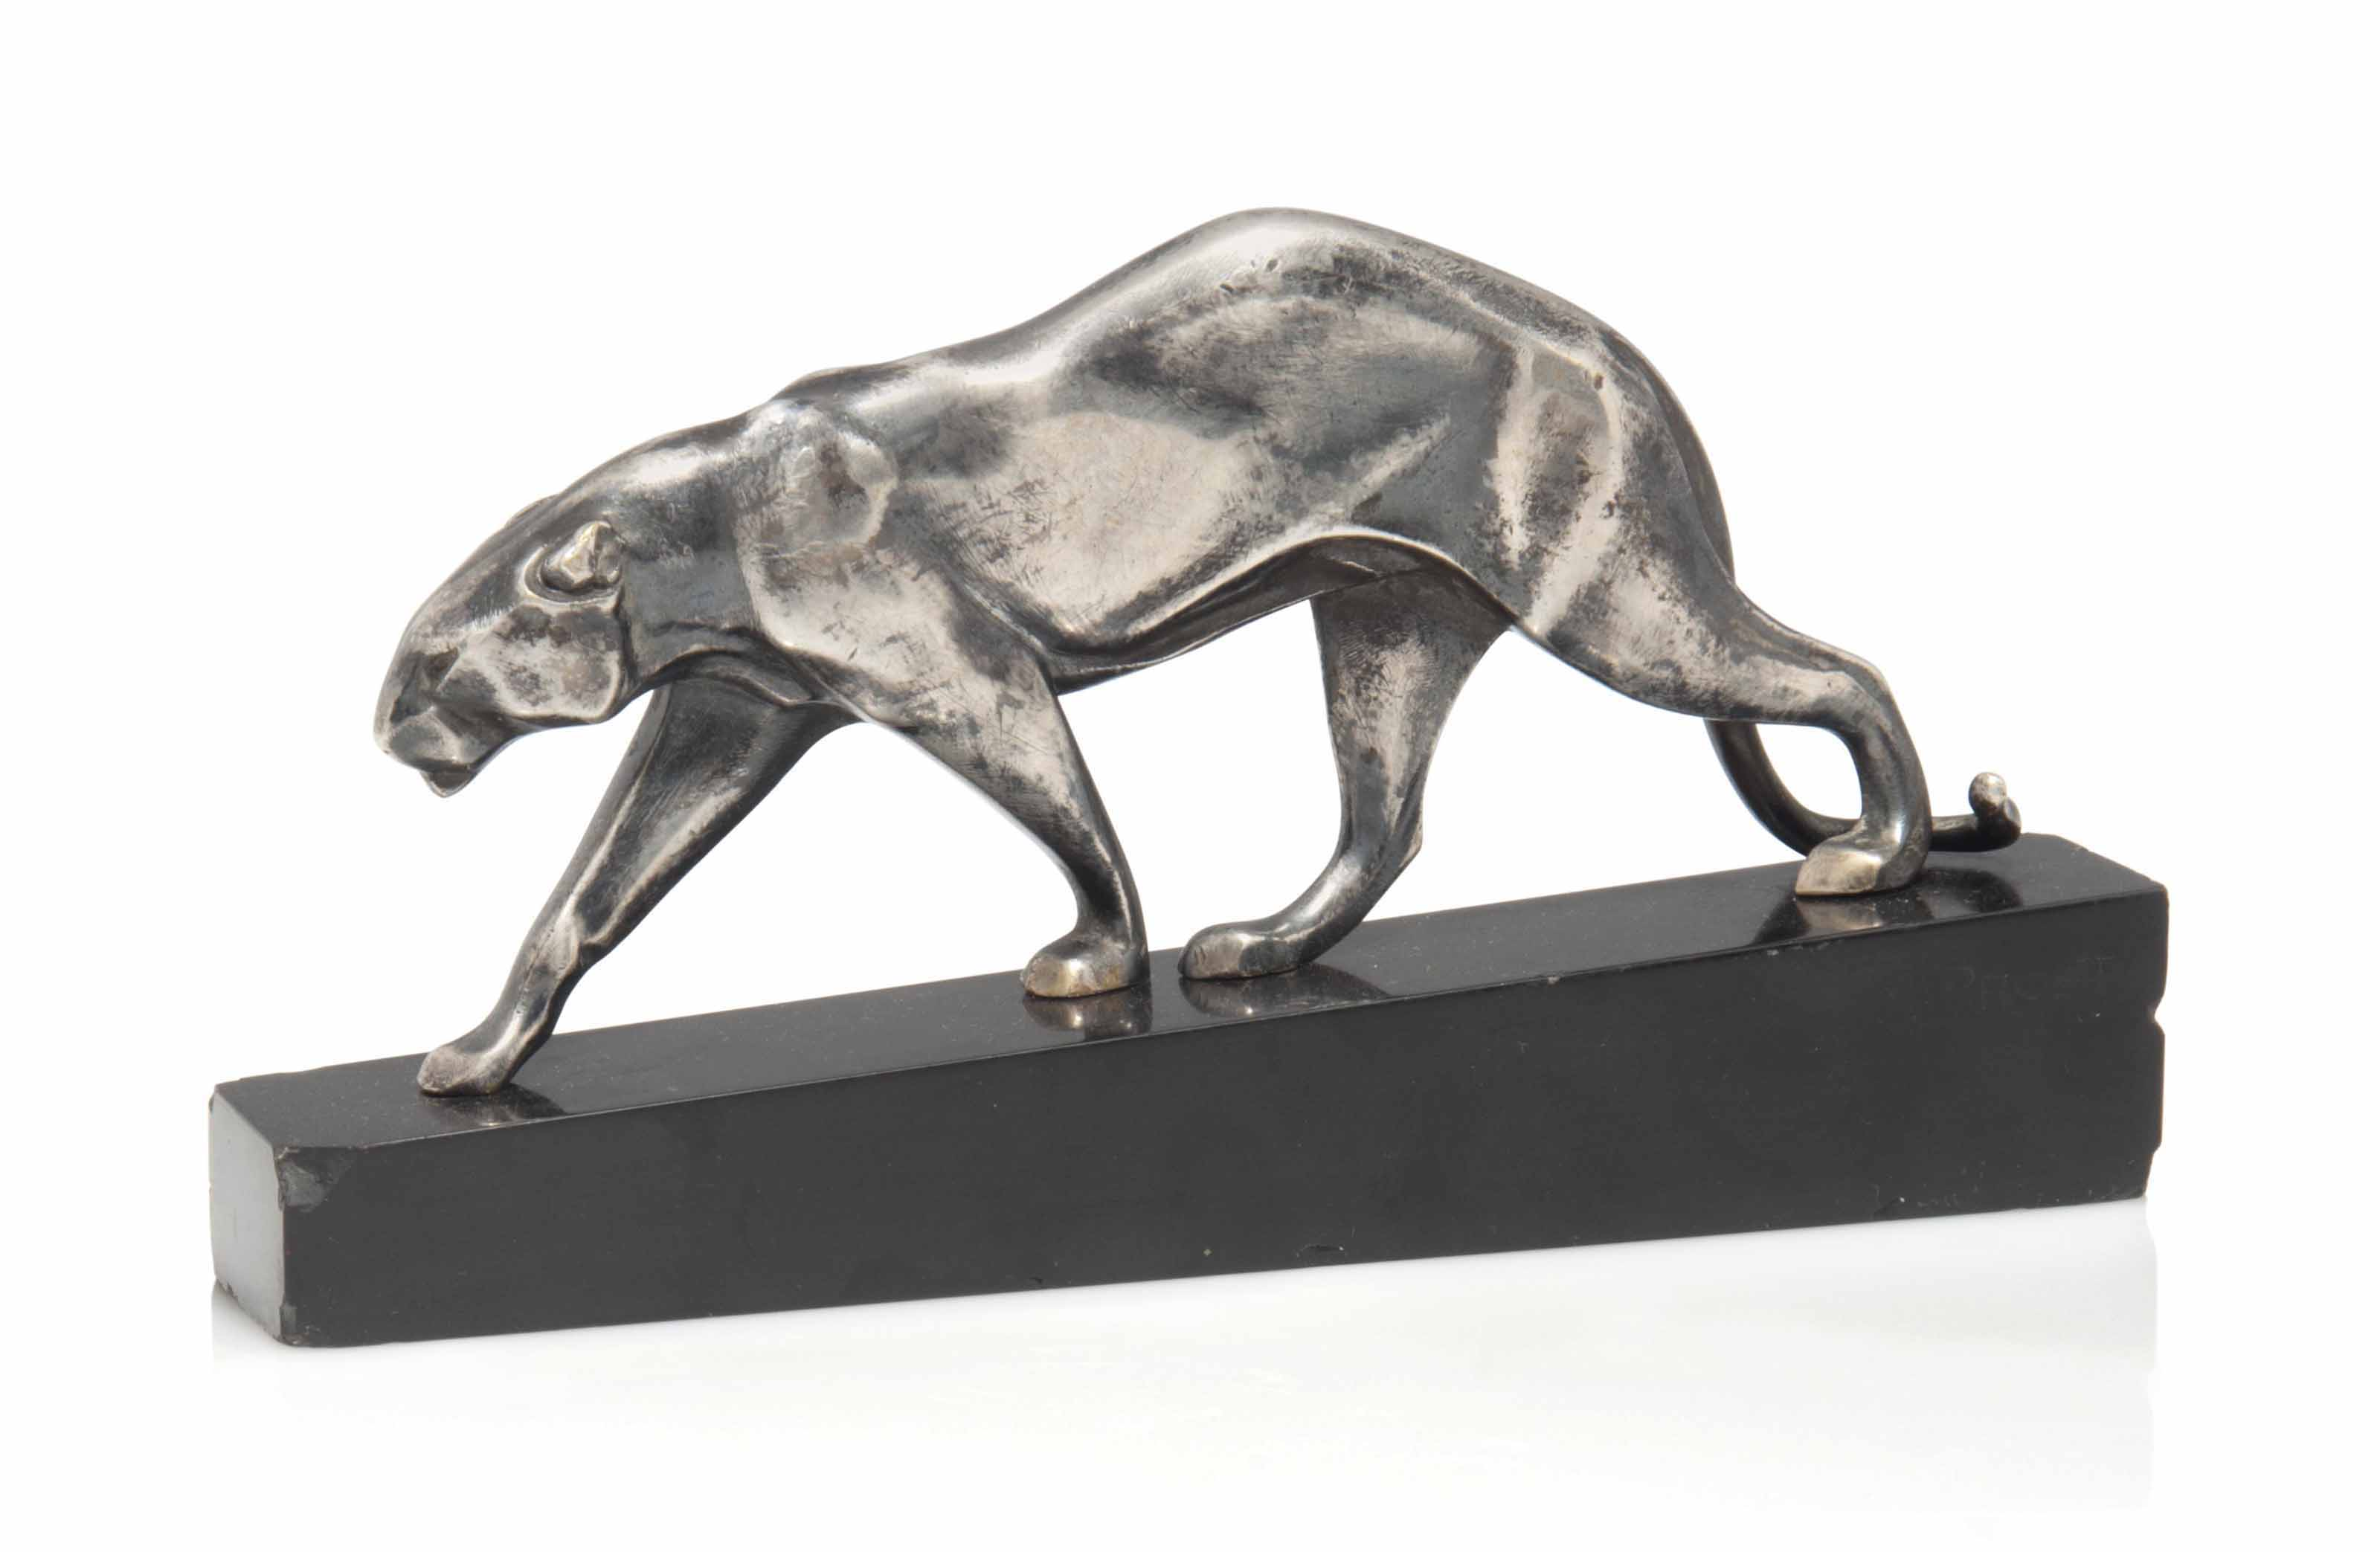 A MAURICE PROST (1894-1967) BRONZE PANTHER MOUNTED ON A SLATE PLINTH